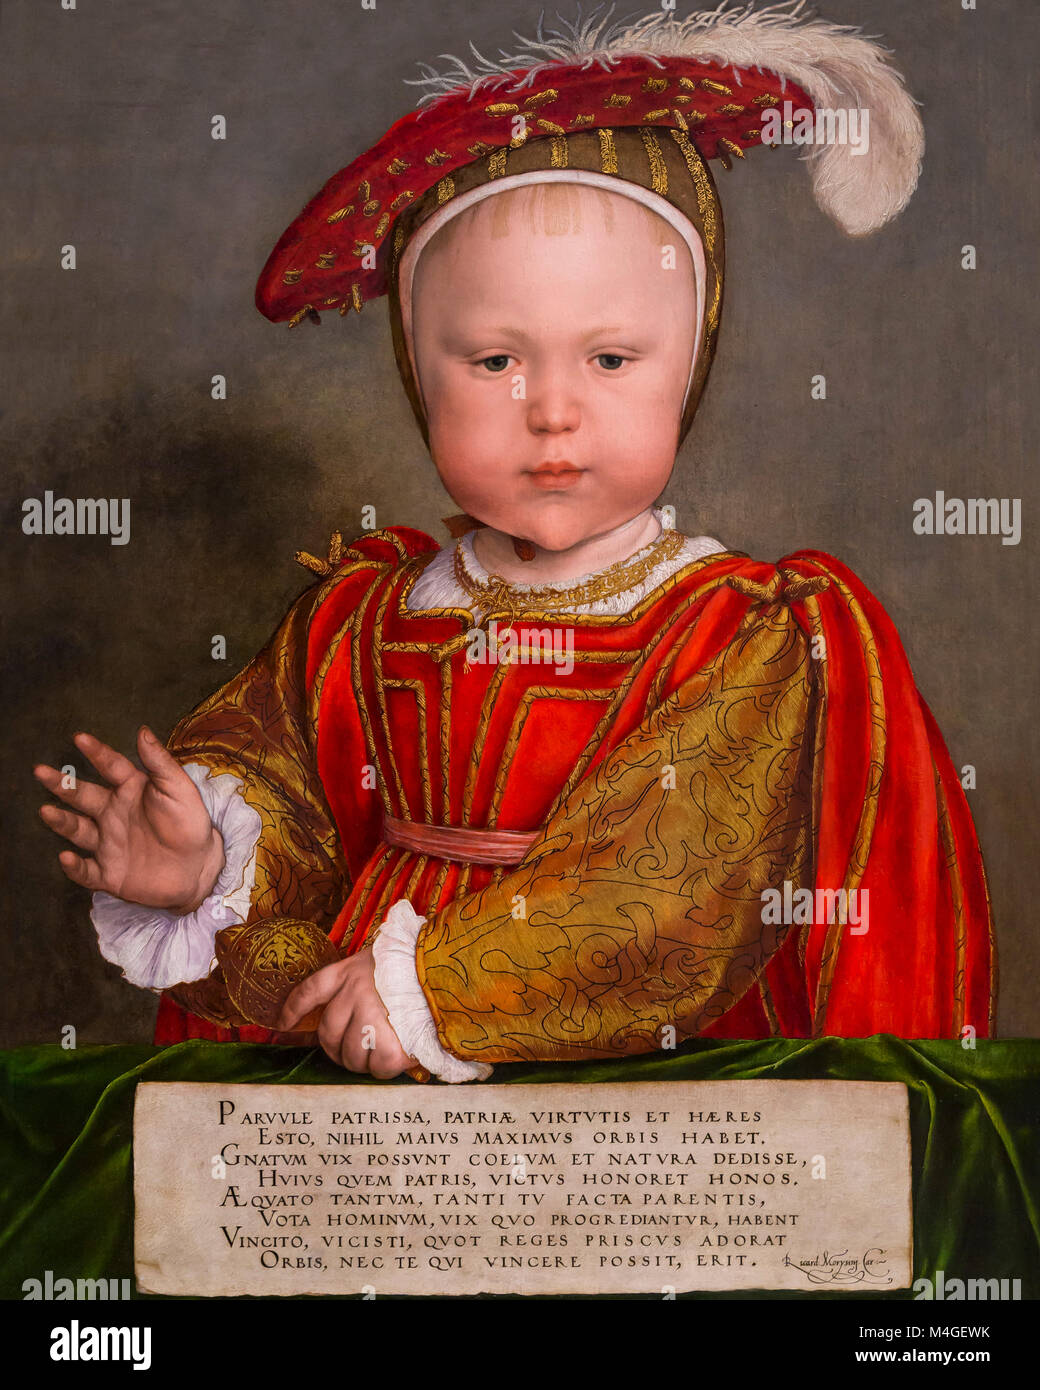 Edward VI as a Child, Hans Holbein the Younger, circa 1538, National Gallery of Art, Washington DC, USA, North America - Stock Image